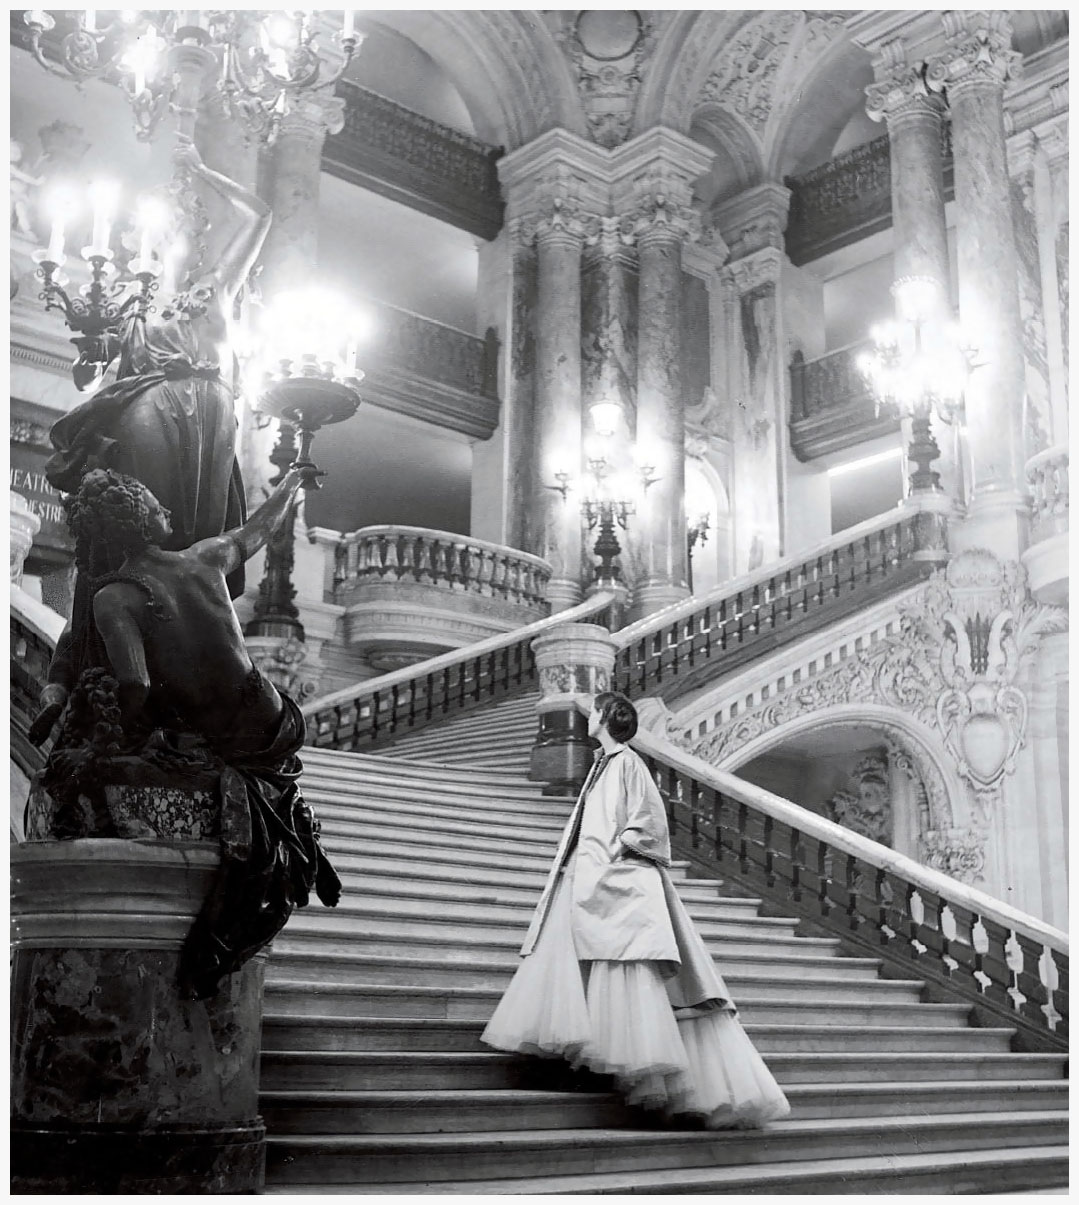 Keats diors-tulle-ballgown-on-the-grand-staircase-at-the-paris-opera-photo-clifford-coffin-1948